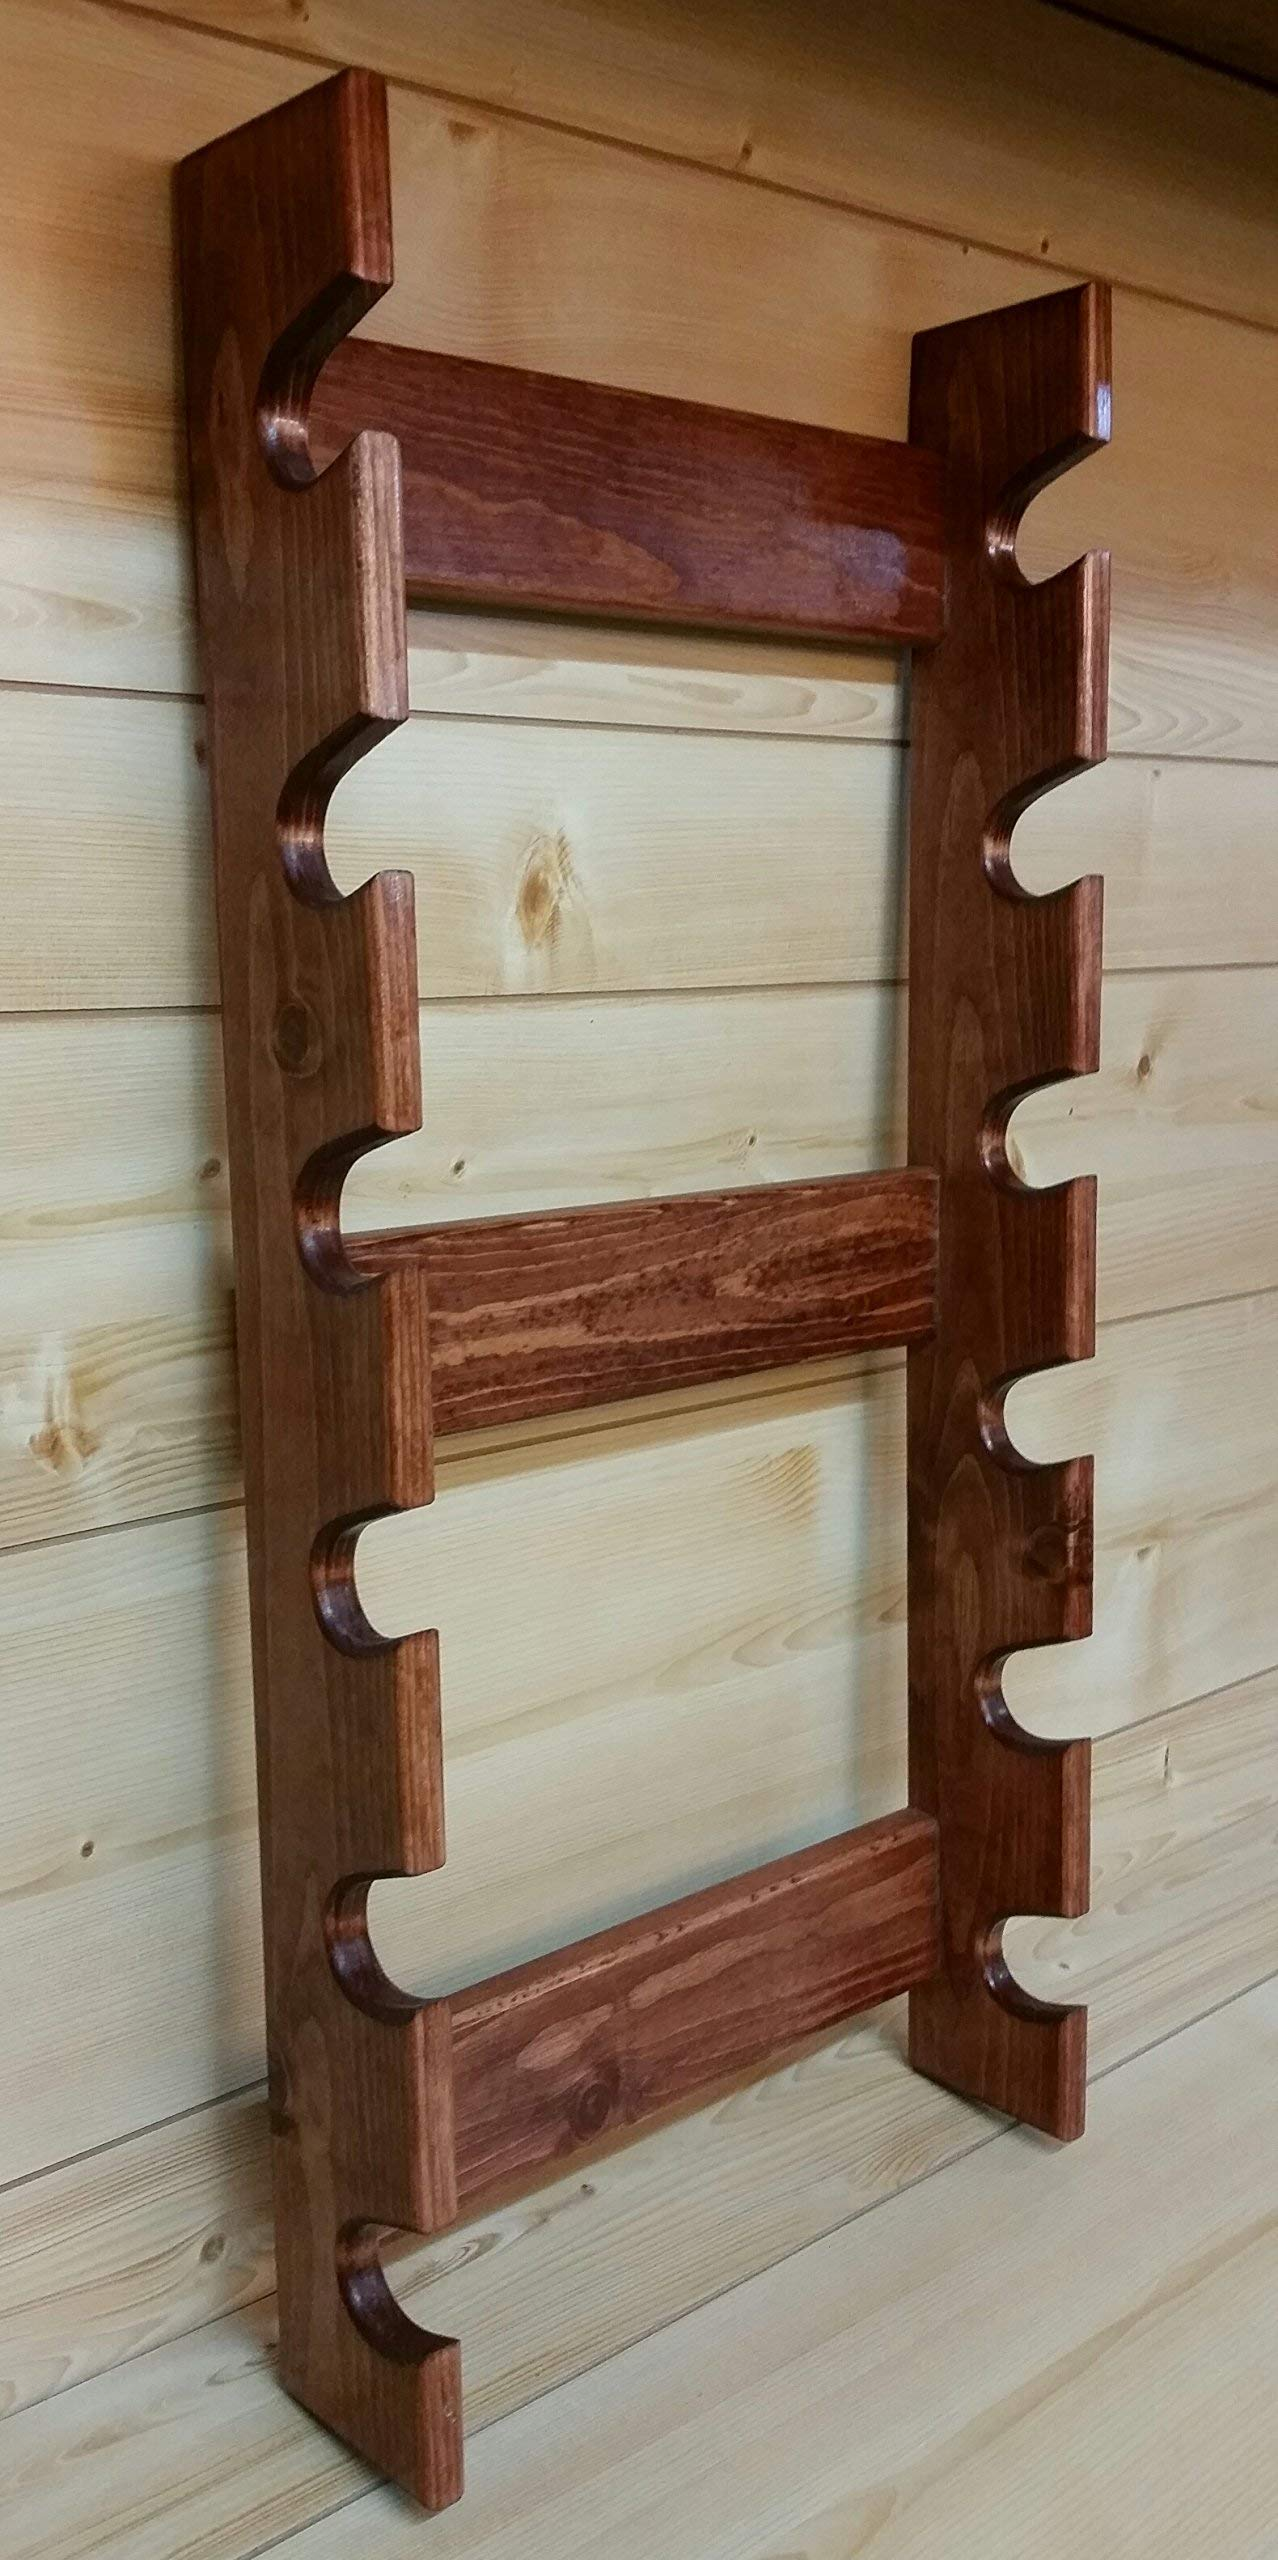 Rolling Pin Rack with Six Slots - Multiple Rolling Pin Rack - Rolling Pin Holder - Rolling Pin Storage - Rolling Pin Rack for 6 by Rusty Nail Custom Woodworking (Image #5)